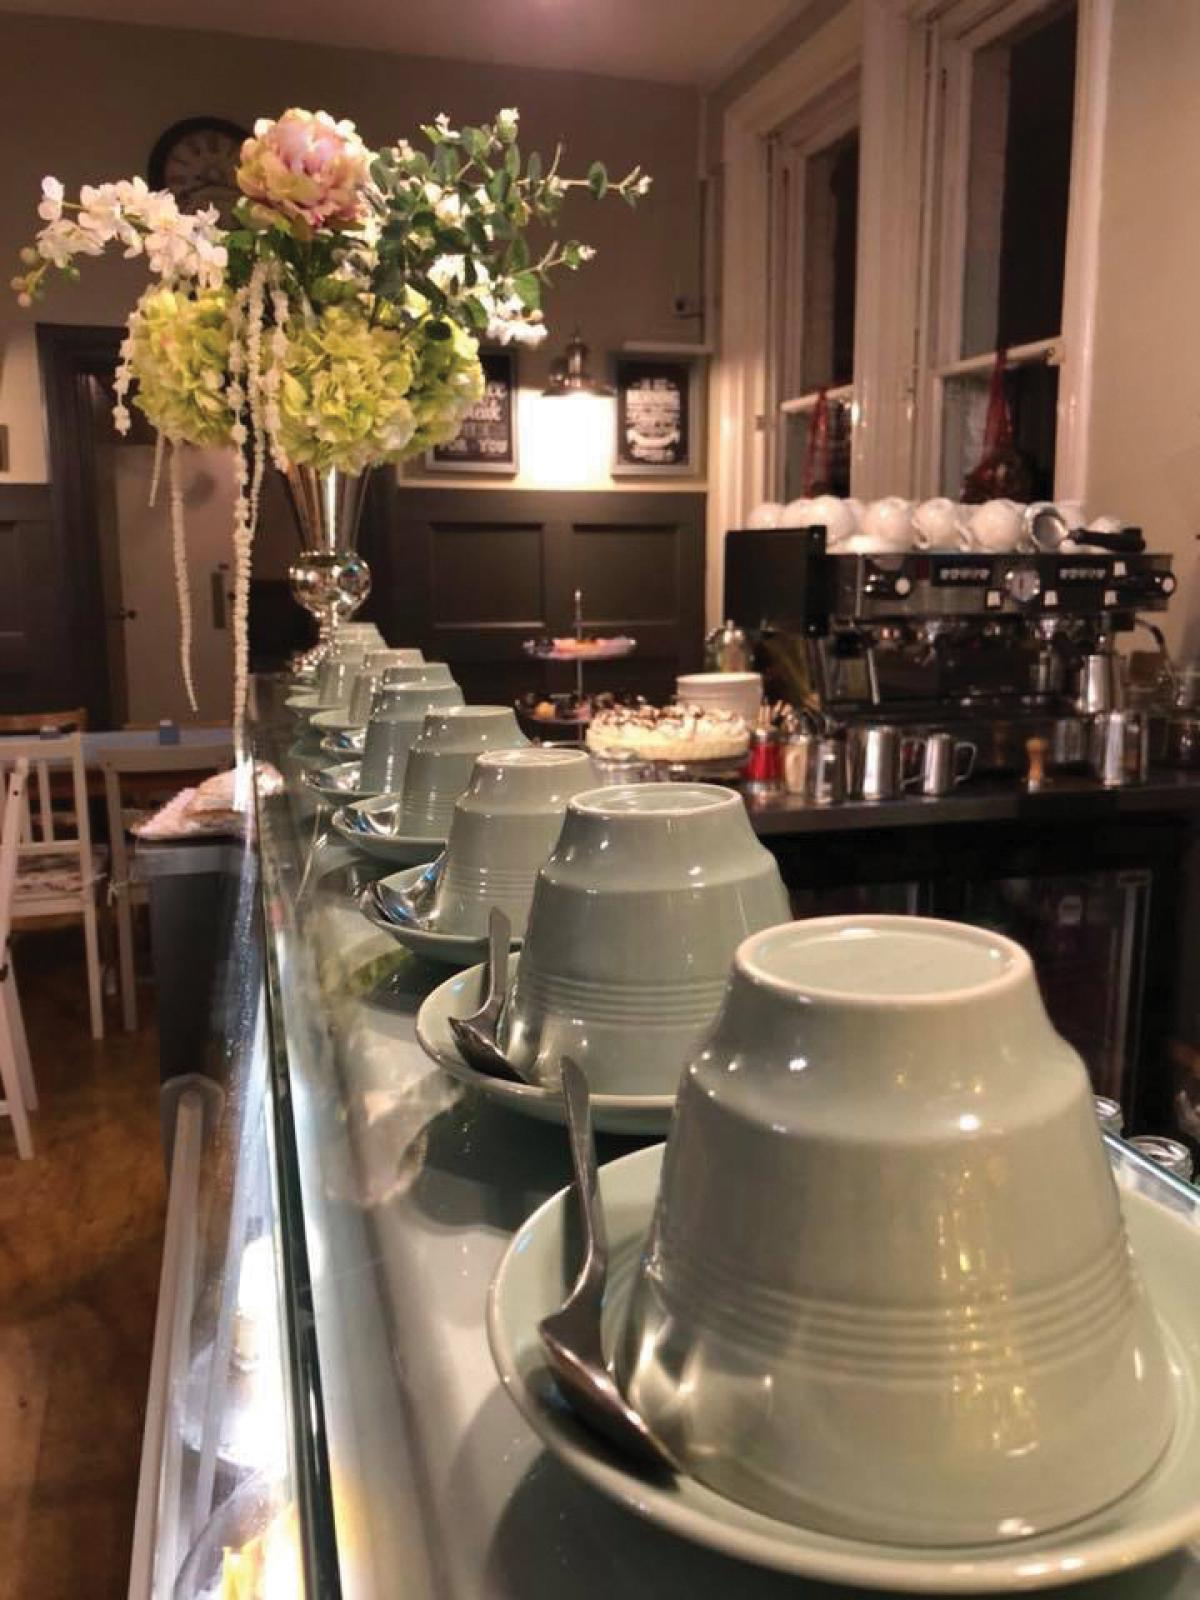 Images from The Gatehouse Café